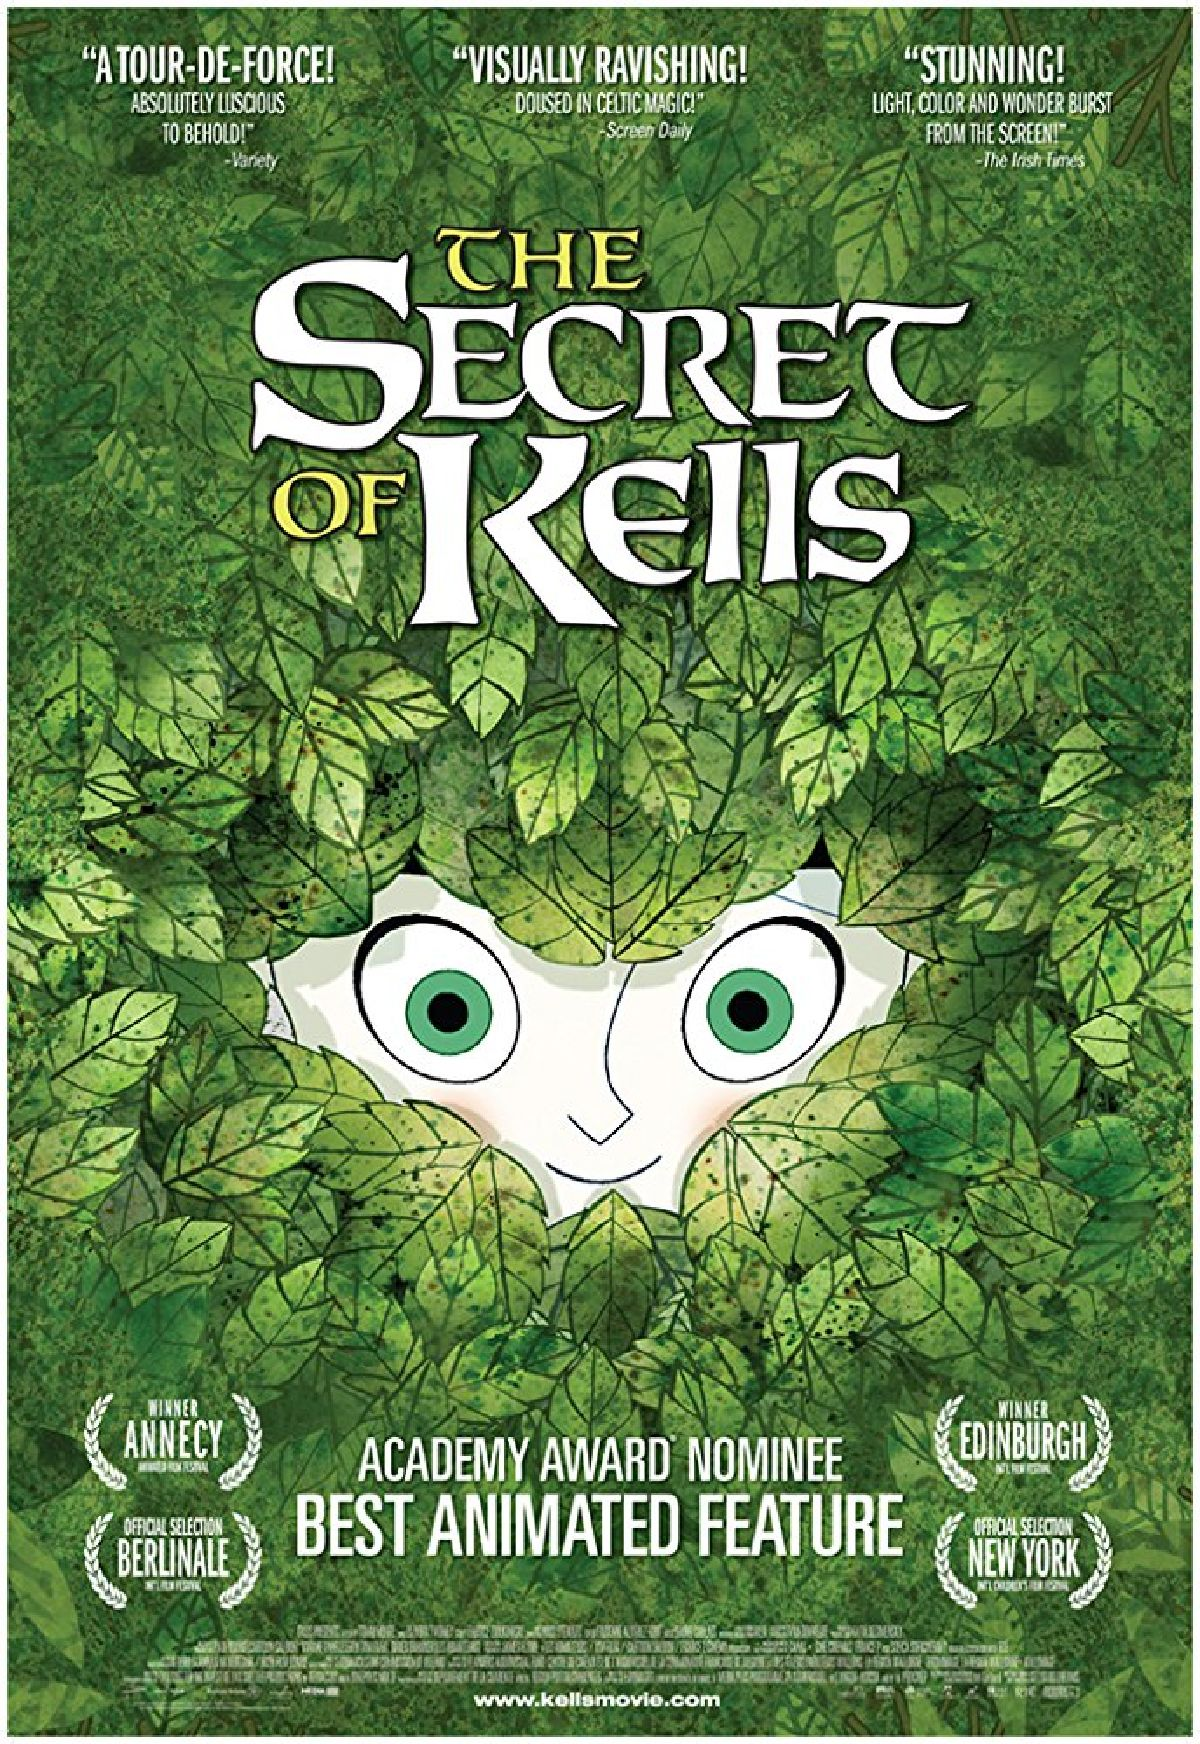 'The Secret Of Kells' movie poster